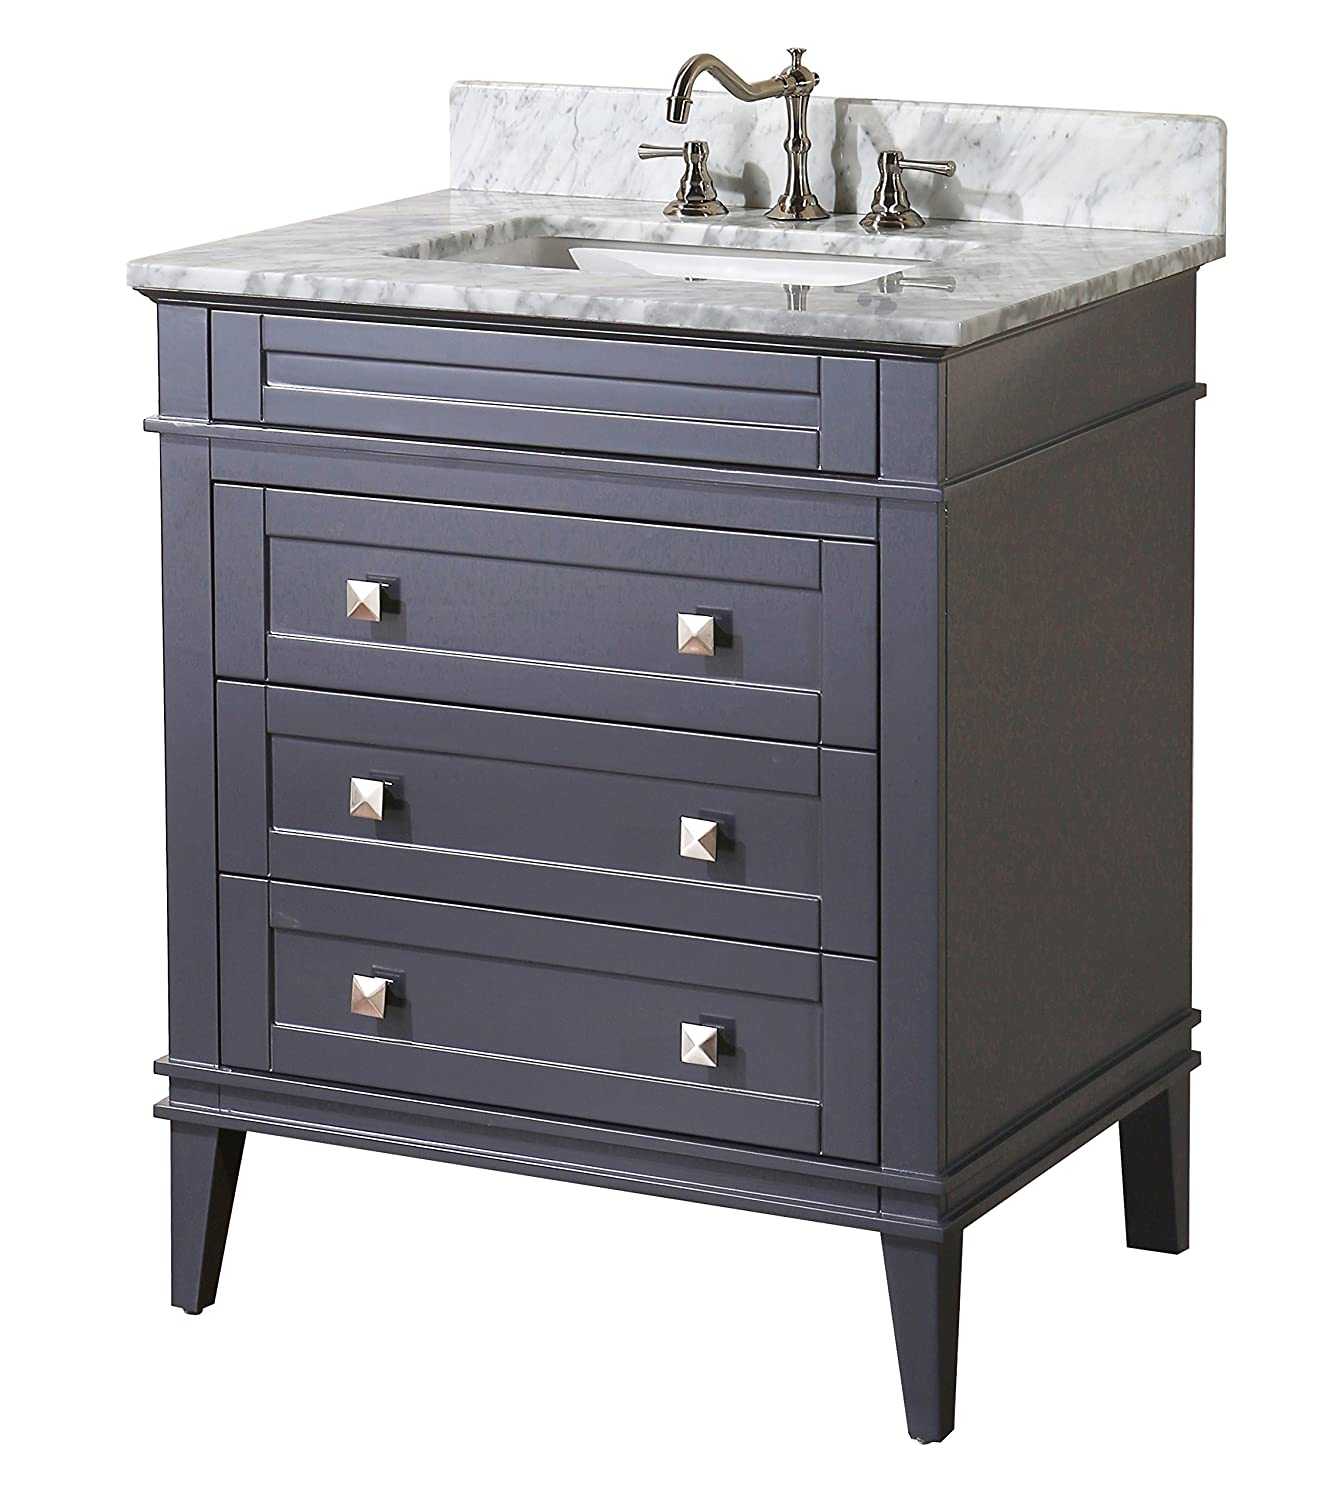 Kitchen Bath Collection KBC L30GYCARR Eleanor Bathroom Vanity with